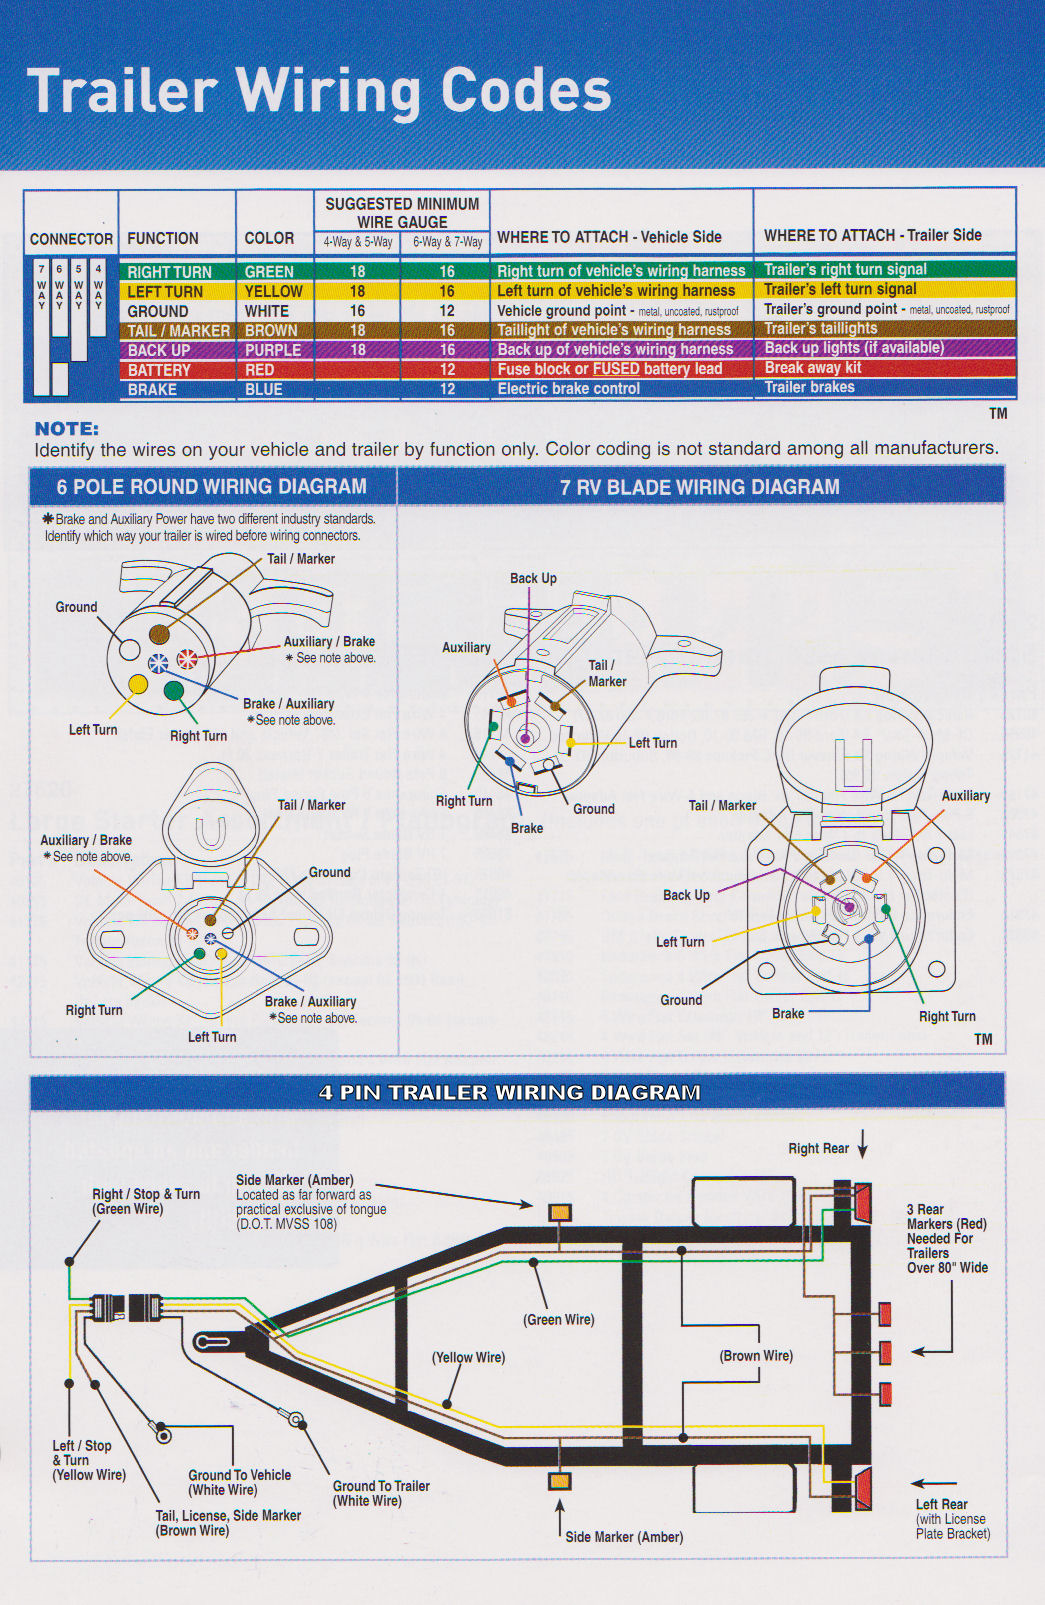 ... wiring diagram for tandem axle trailer free download wiring diagram 4  Pole Trailer Wiring Diagram trailer